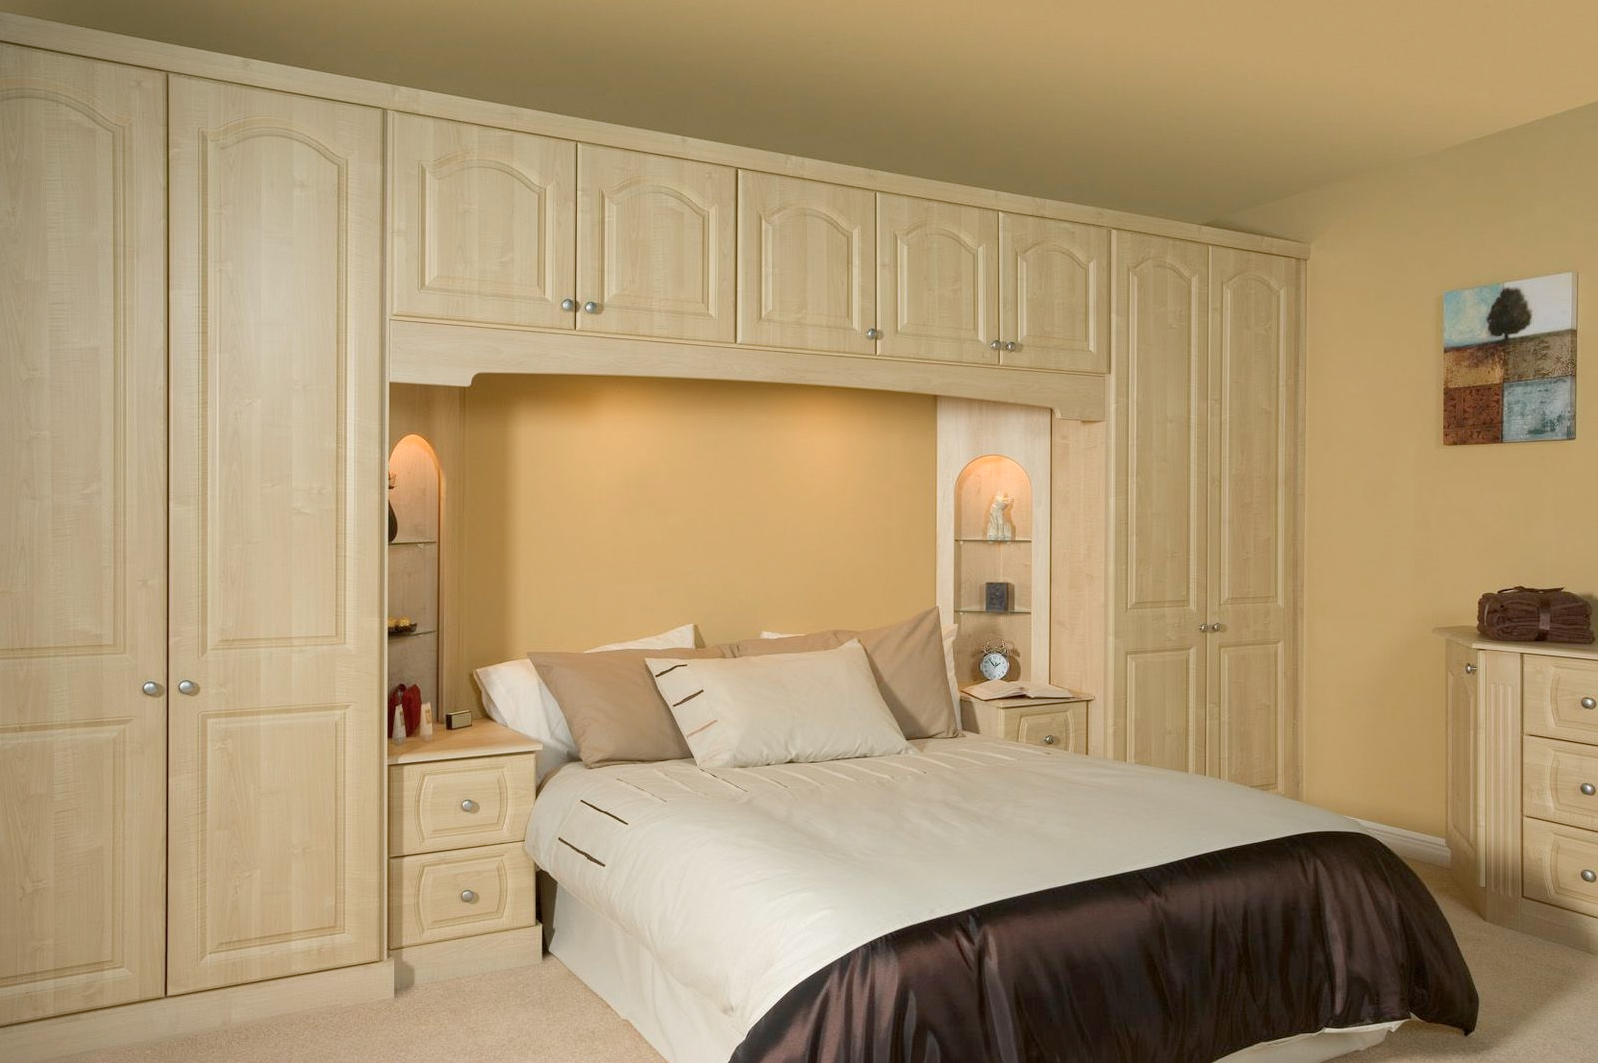 Sherwood maple fitted bedroom furniture proline cabinets - Image for bed room ...